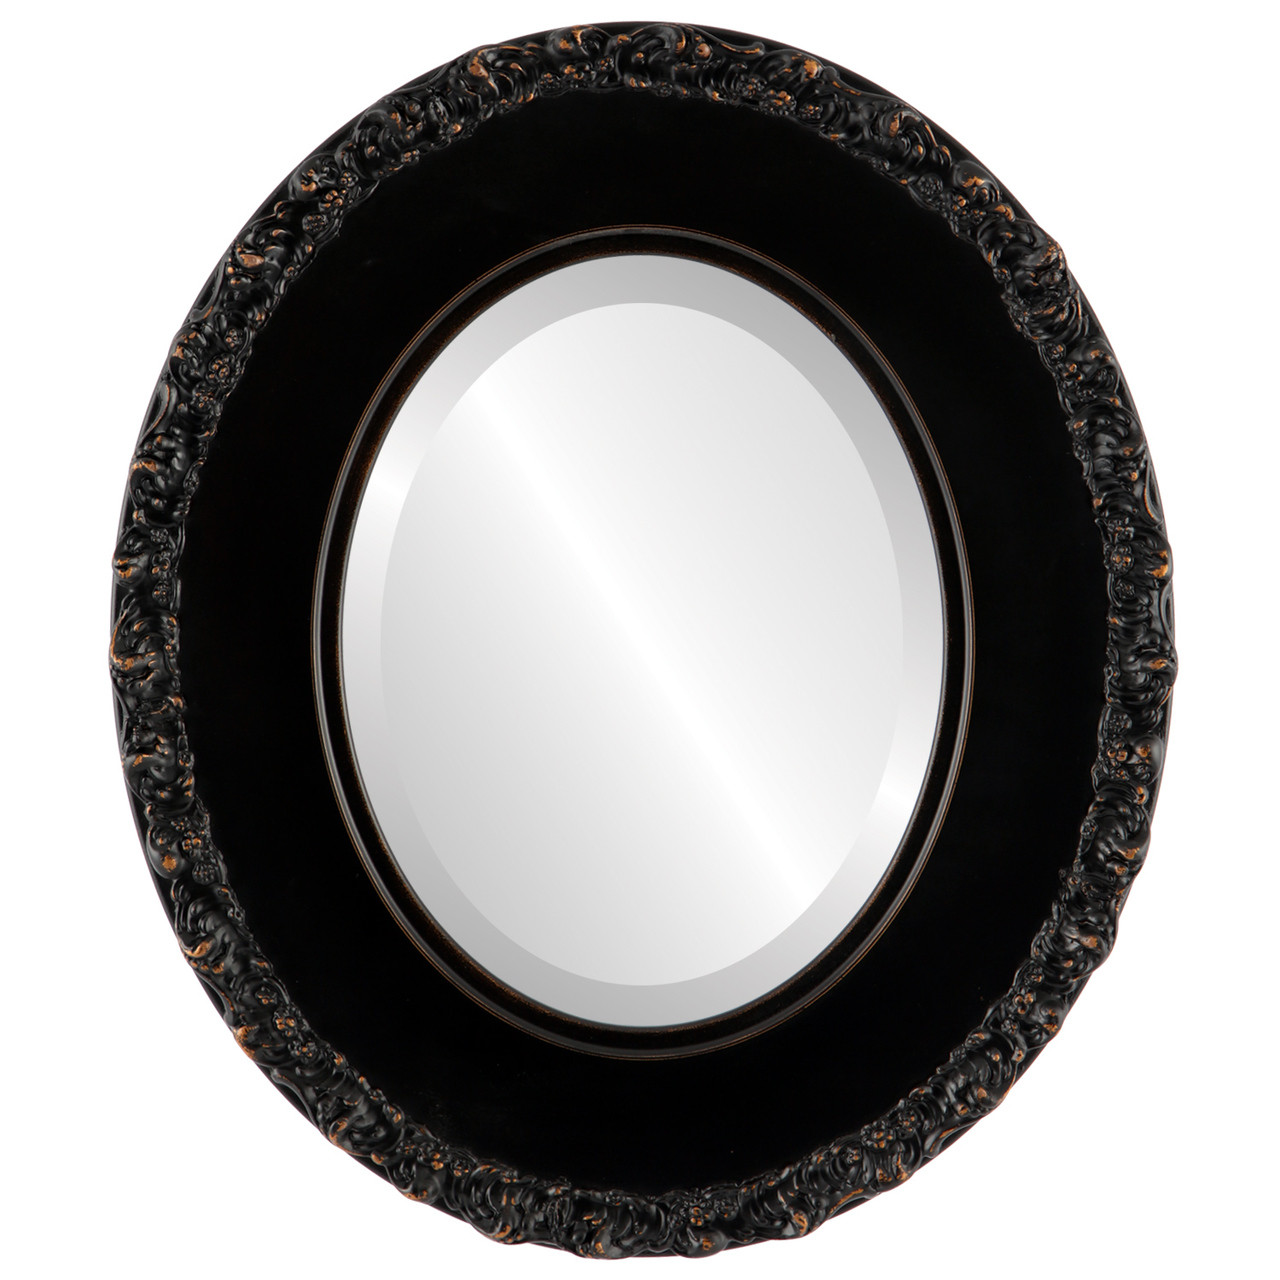 Black Oval Mirrors from $127 | Free Shipping